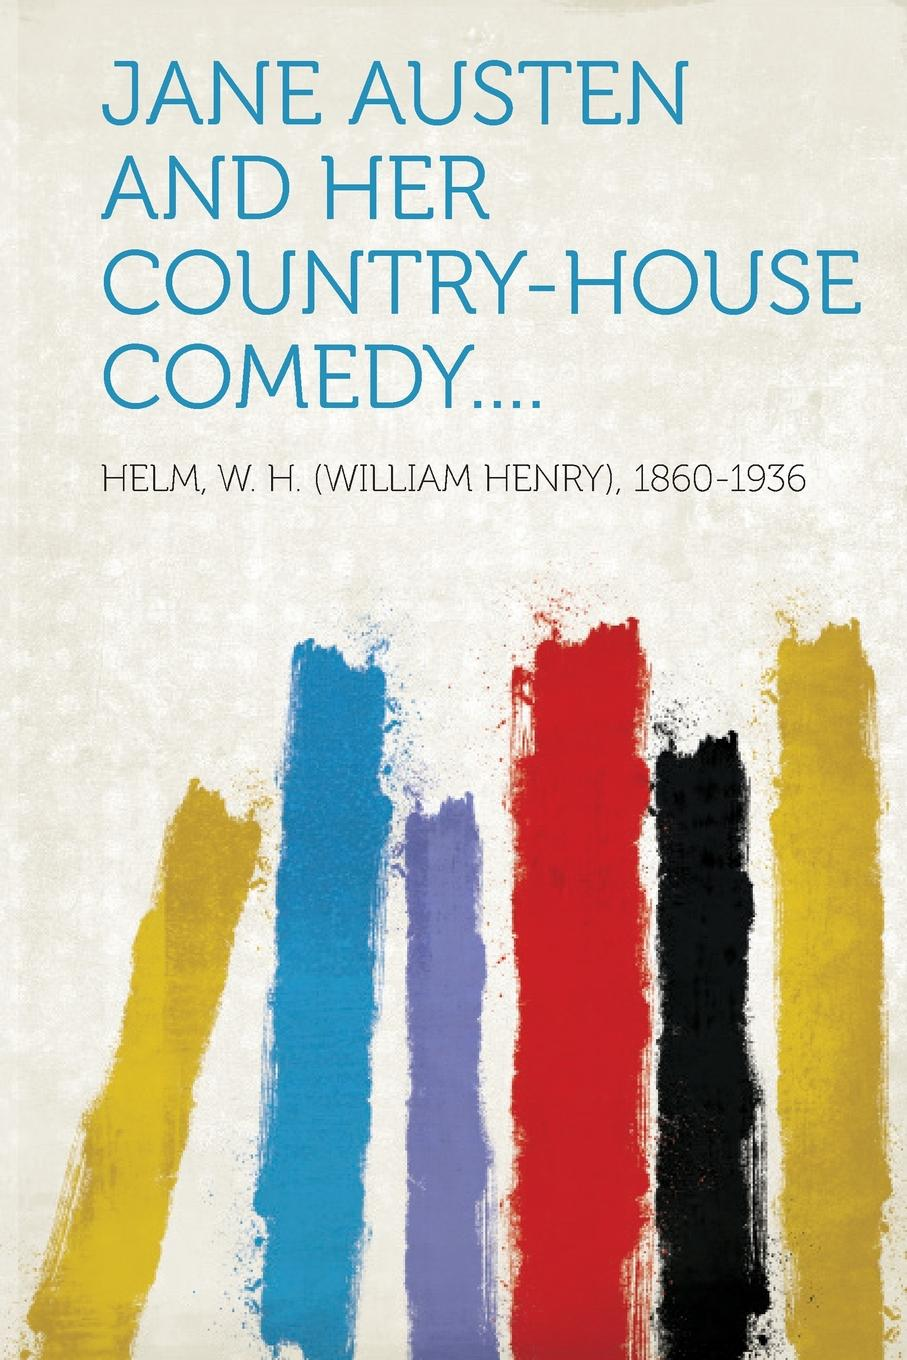 Jane Austen and Her Country-House Comedy....